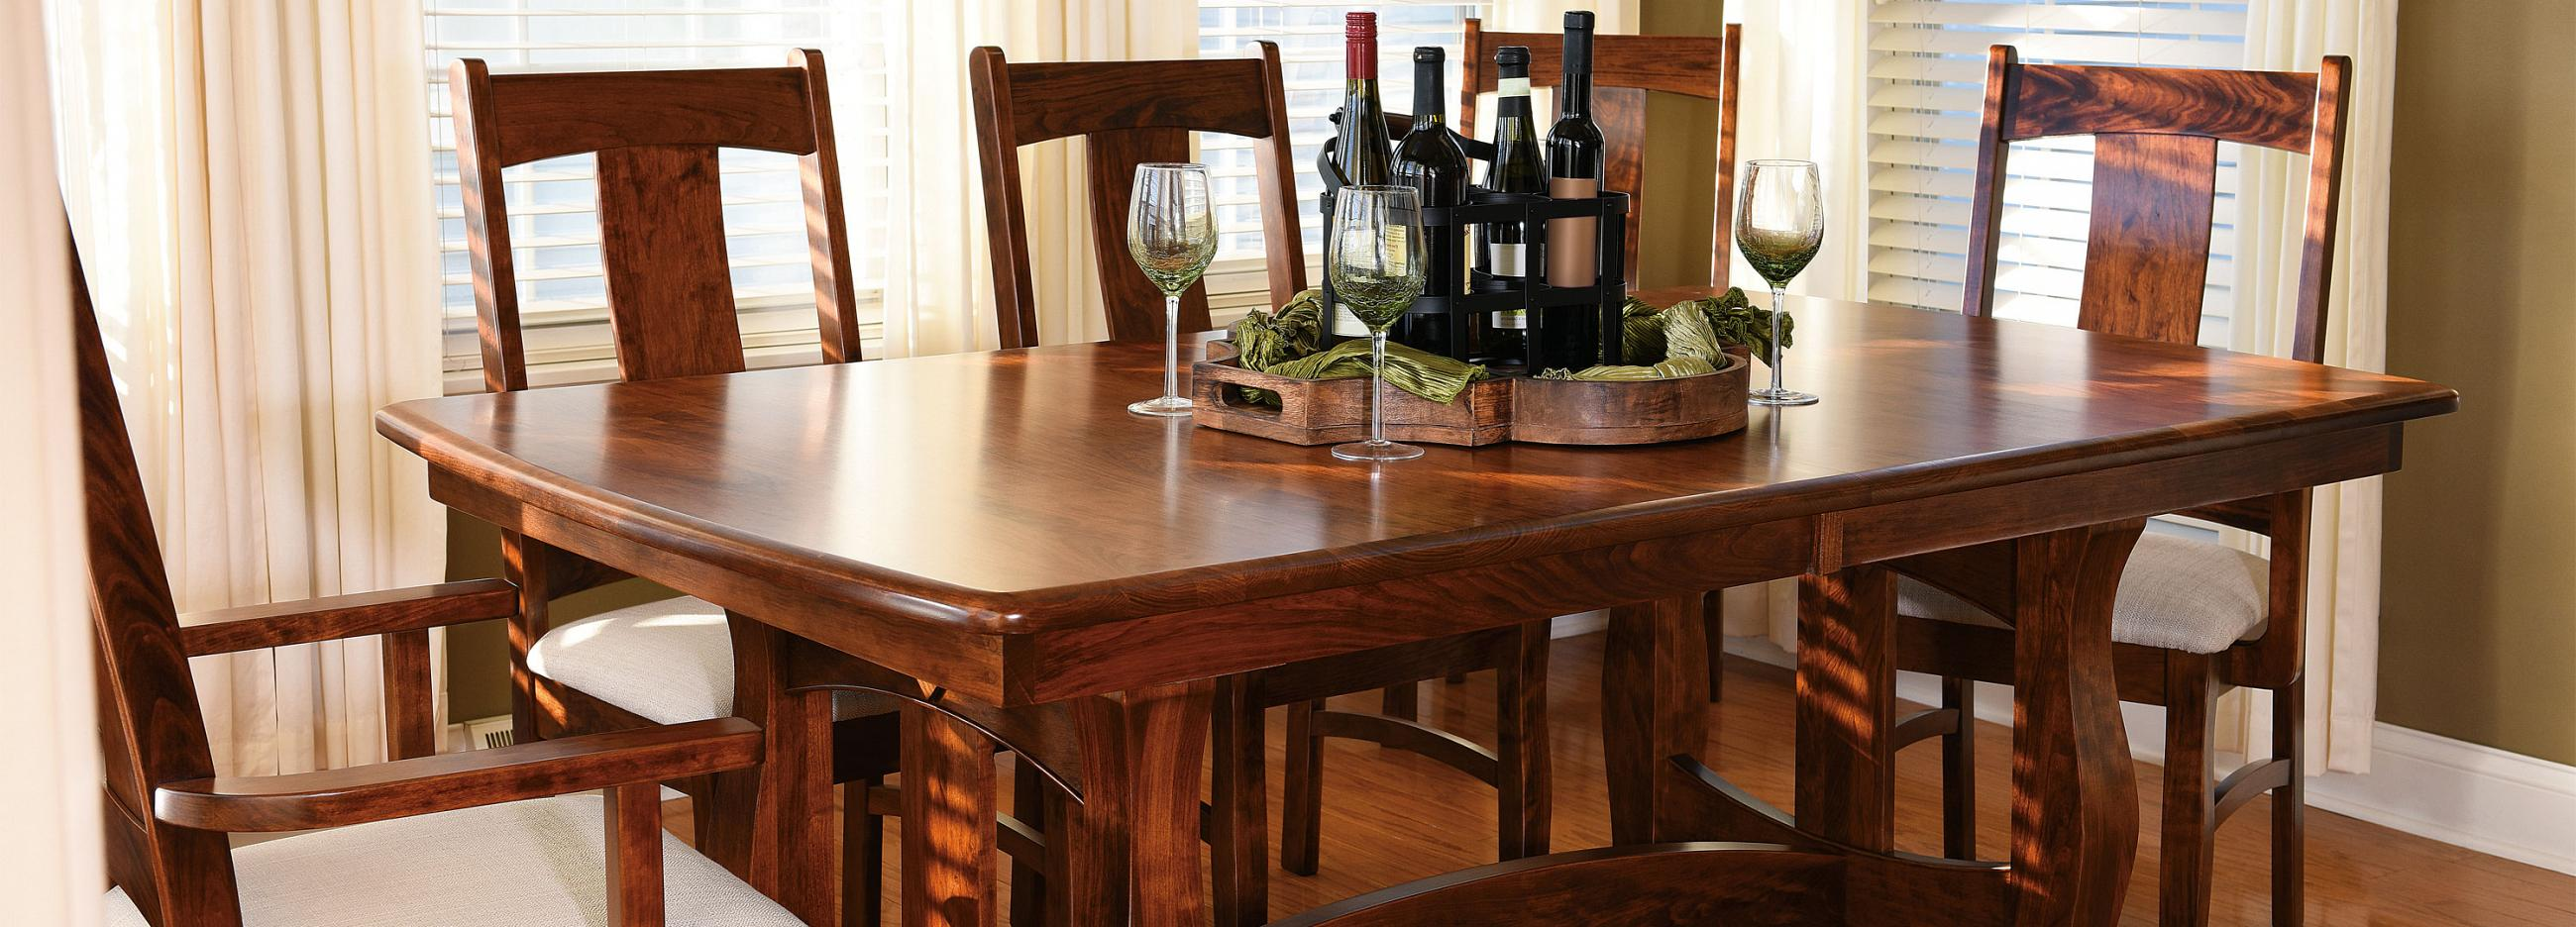 Northern Indiana Woodcrafters Dining Room Furniture